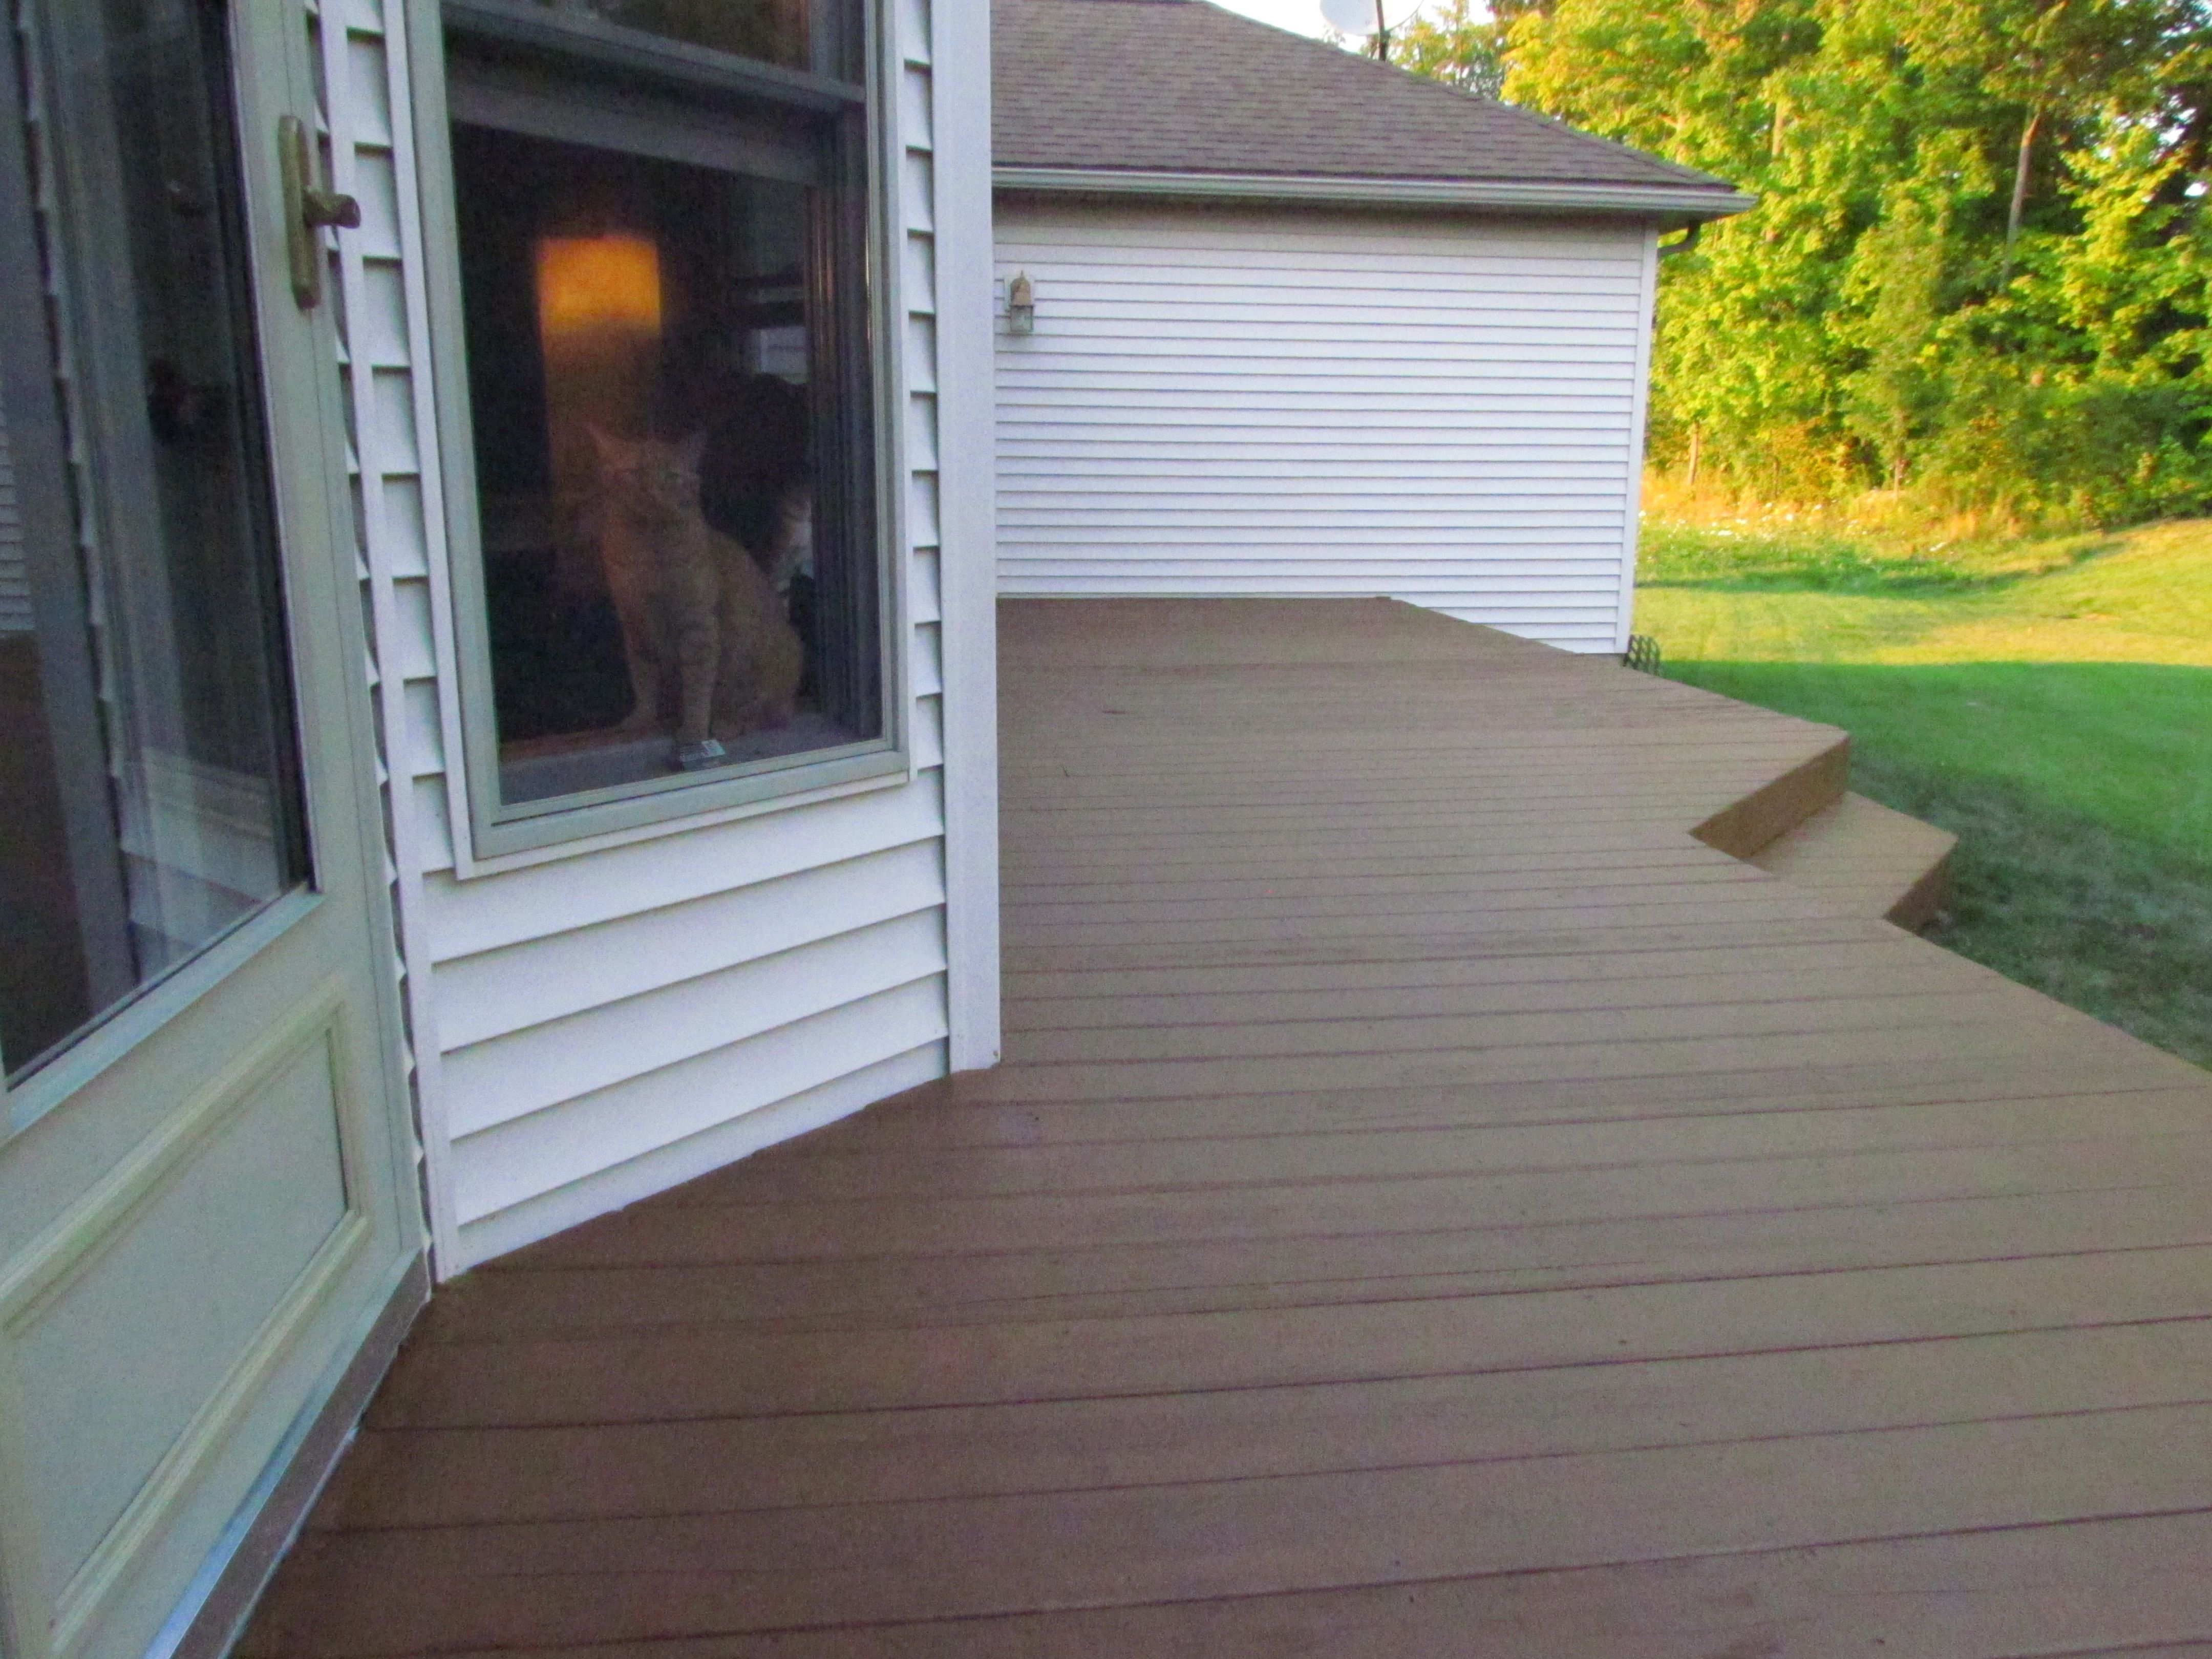 Flood Stain For Wood Semi Transparent Chestnut Color Staining Deck Deck Stain Colors Deck